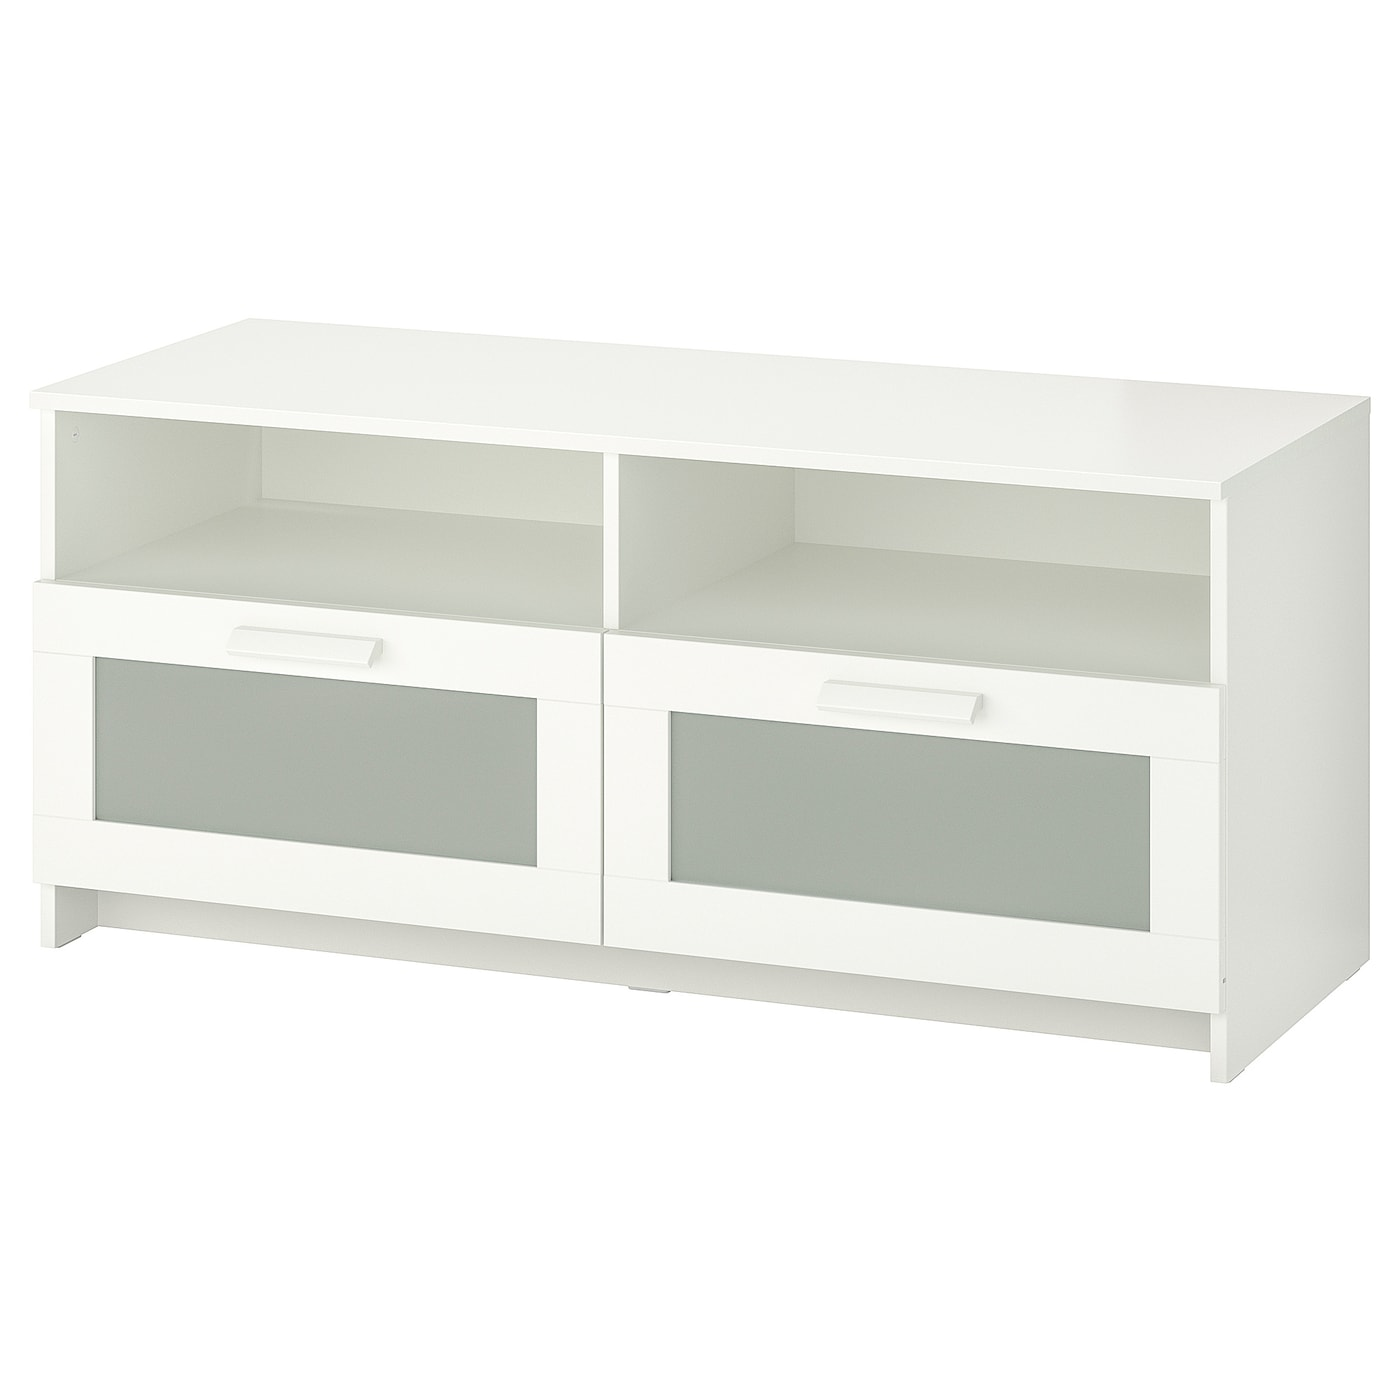 Tv Meubel Break.Brimnes Tv Bench White Ikea